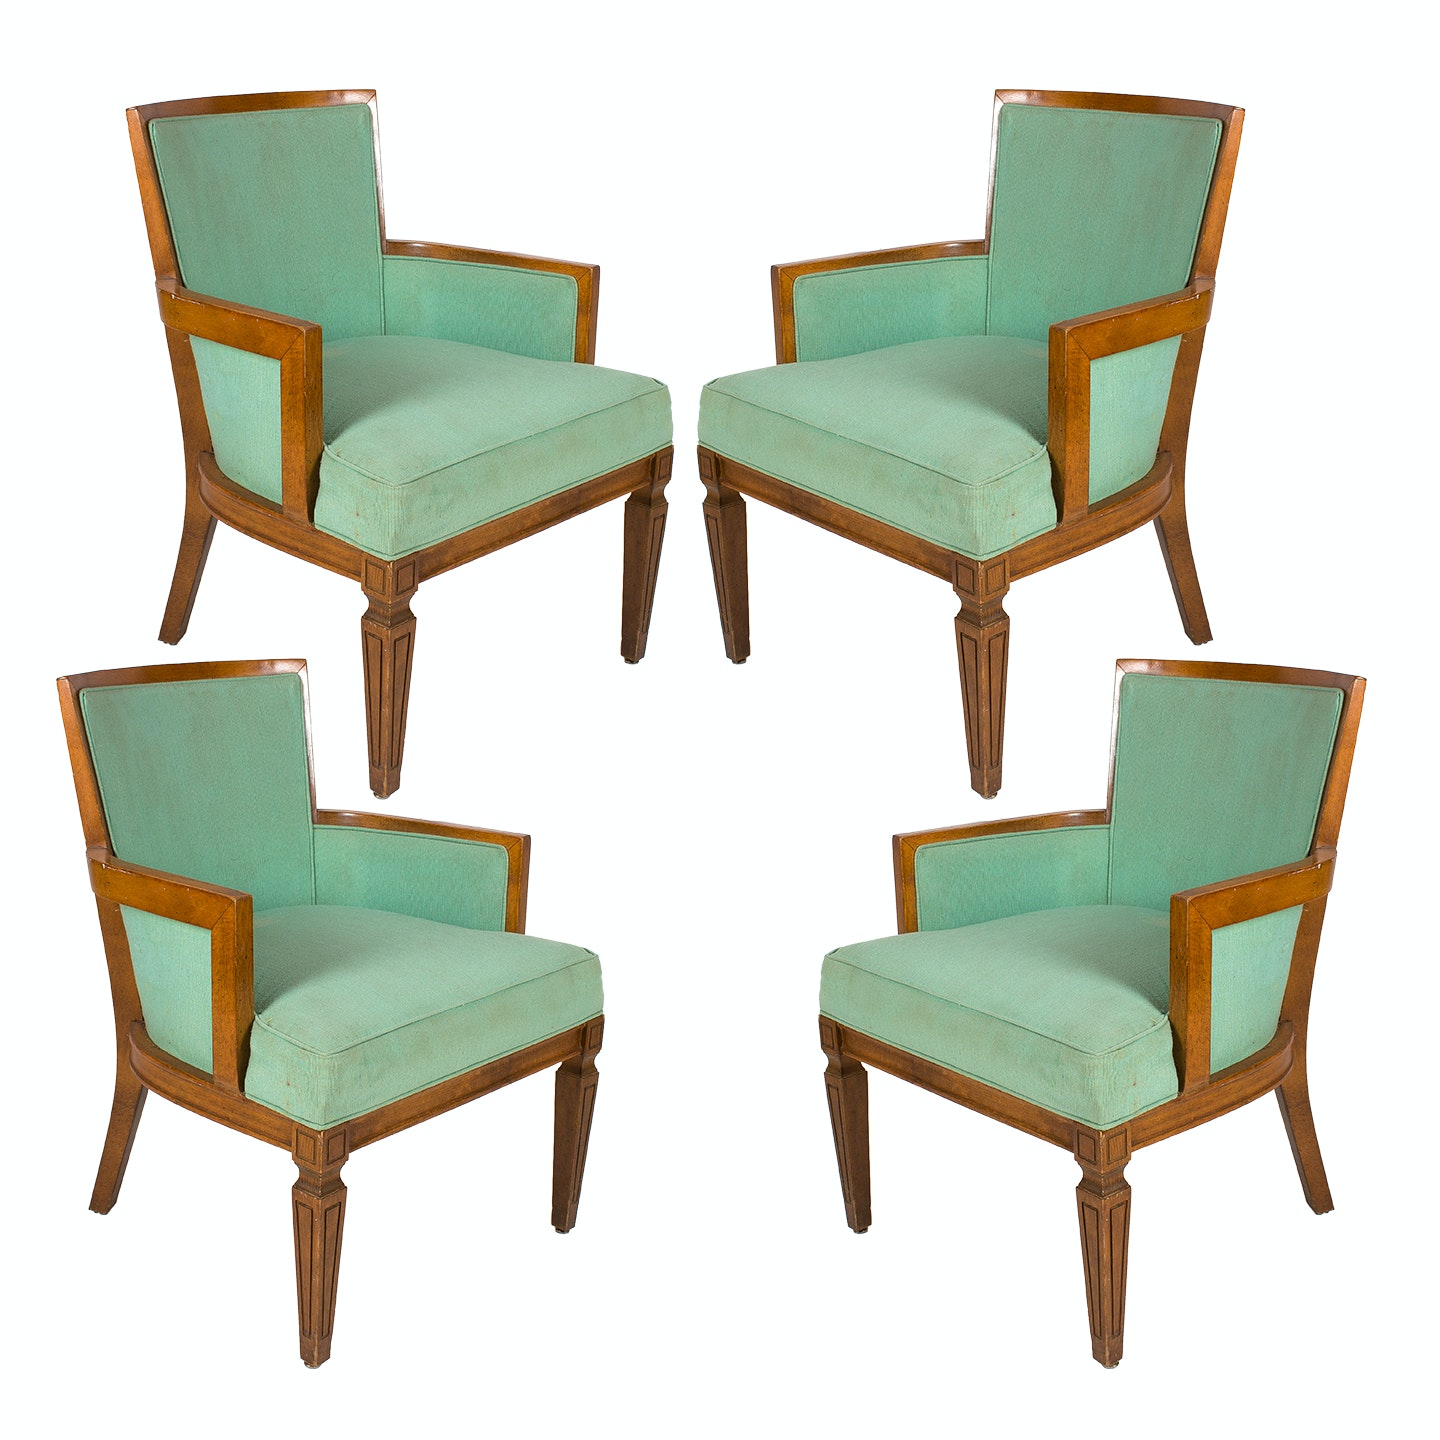 Louis XVI Style Armchairs with Fluted Legs